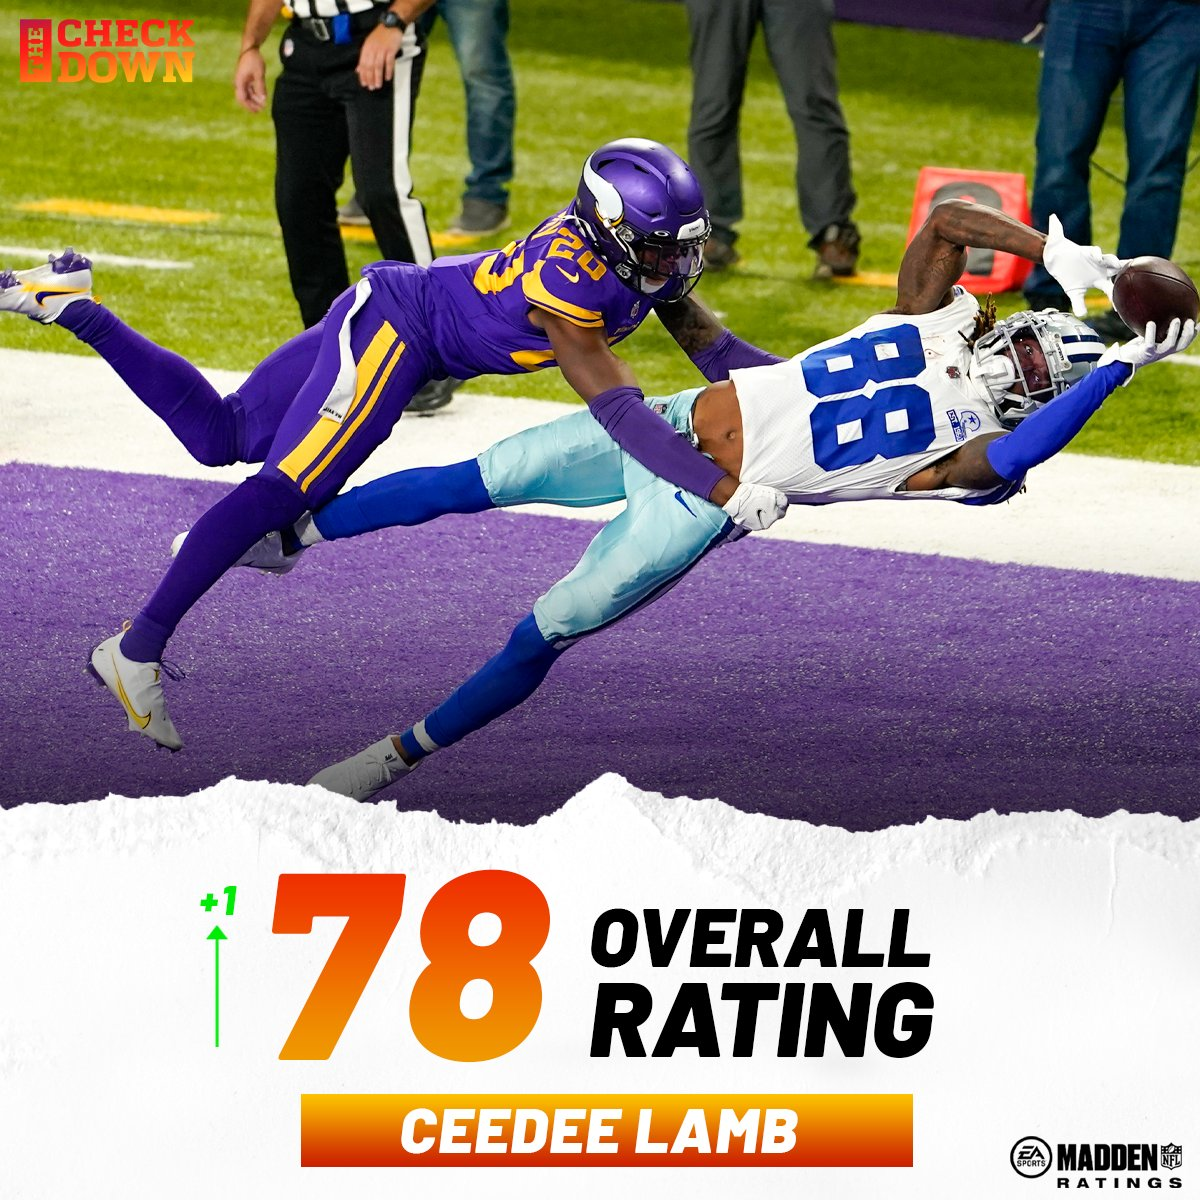 CeeDee Lamb is getting that Madden ratings boost after his ridiculous catch on Sunday 🔥 @_CeeDeeThree @dallascowboys @EAMaddenNFL